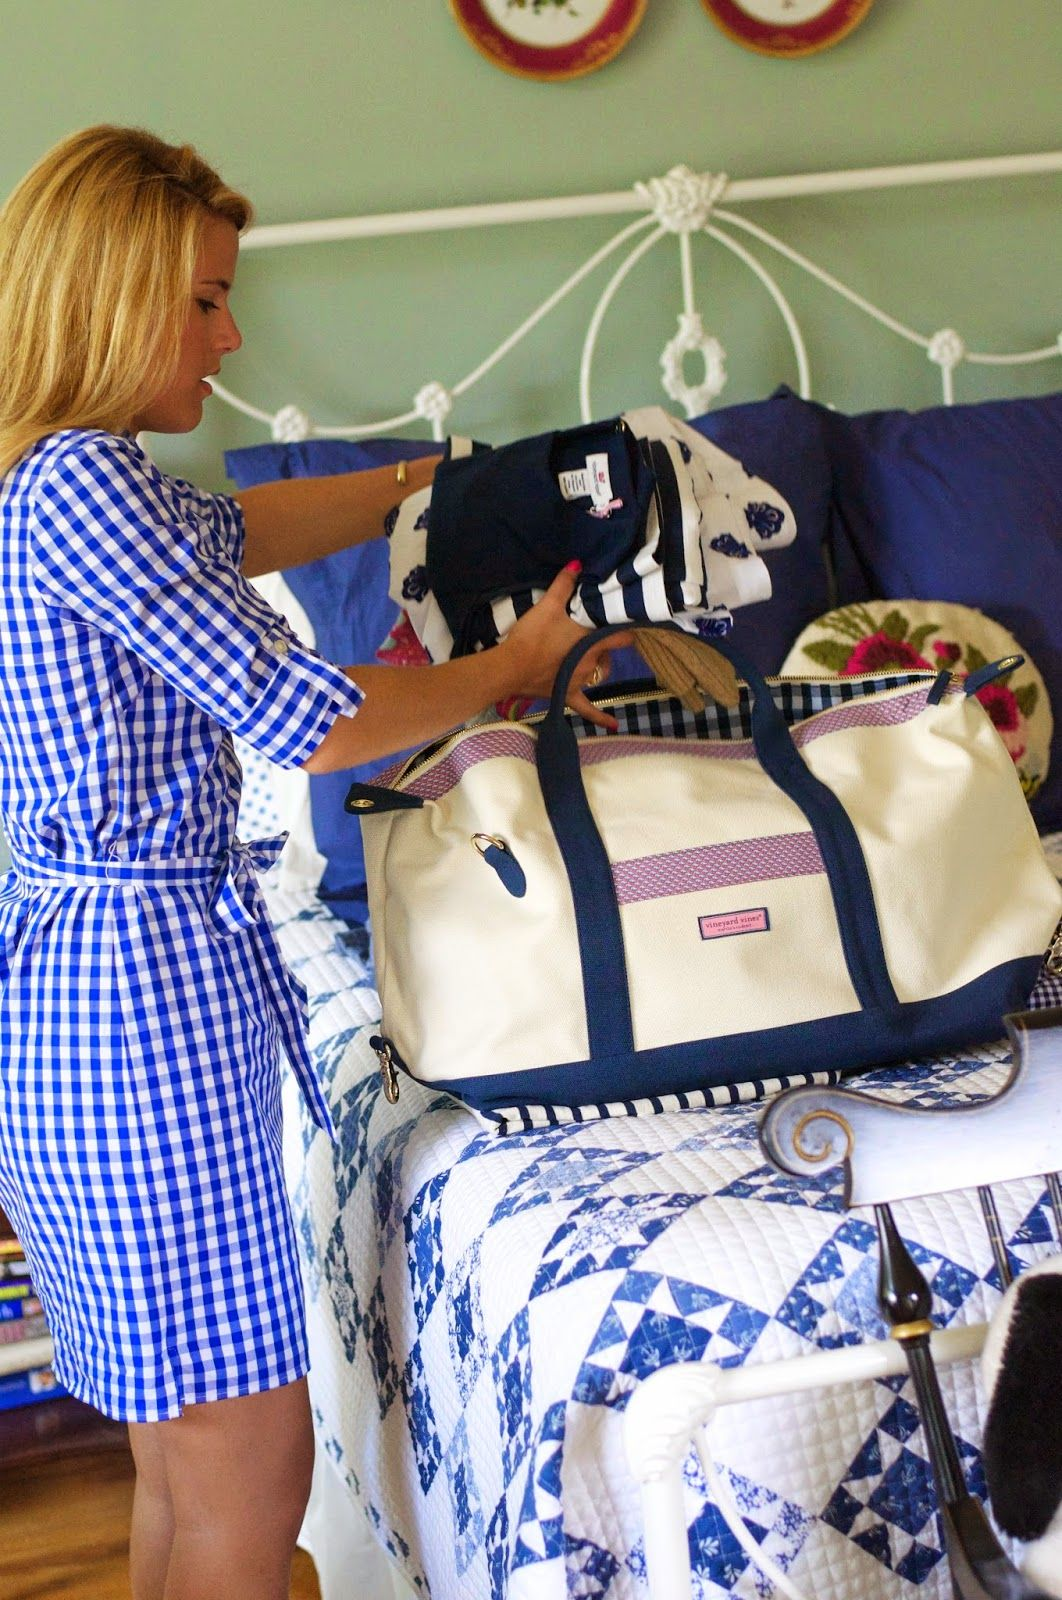 Summer Wind - packing for a weekend at the lake; love the blue & white décor, the plates above the bed, the gingham shirtdress and the weekender bag (although not the fact it's by VV)